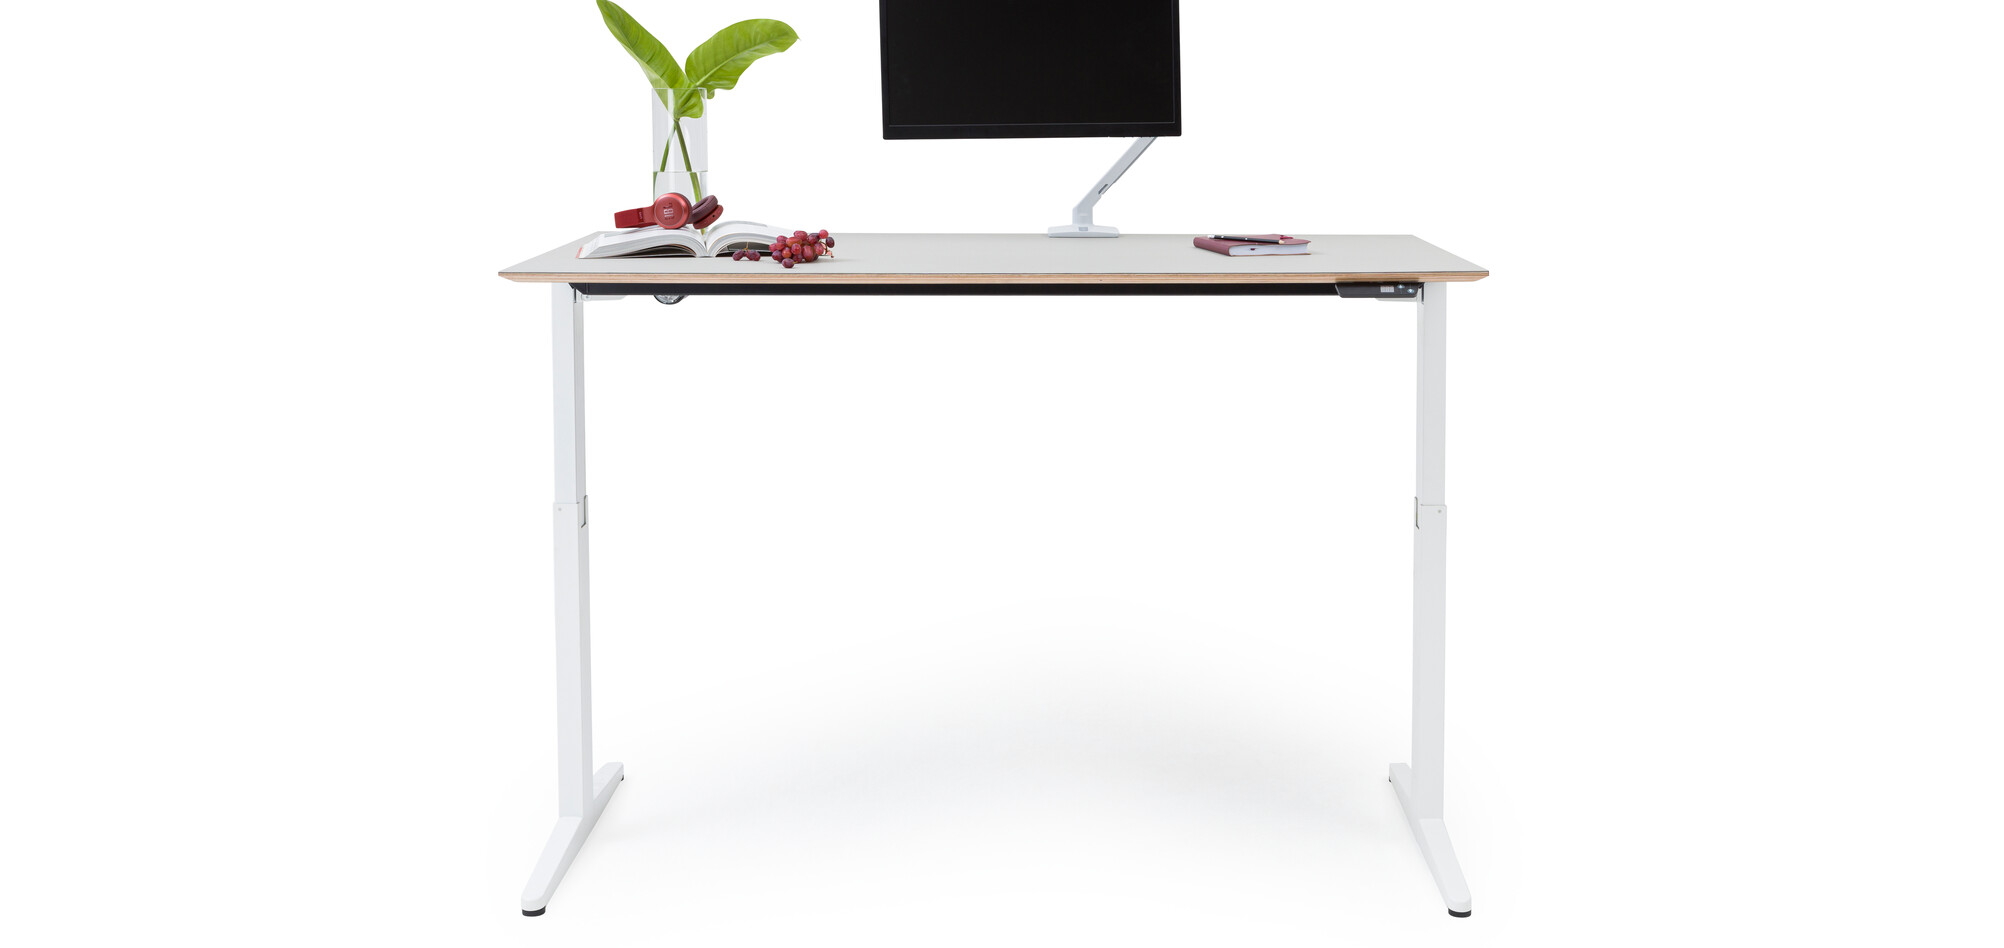 Royal Ahrend Balance folding desk with white frame and grey tabletop in standing position front view